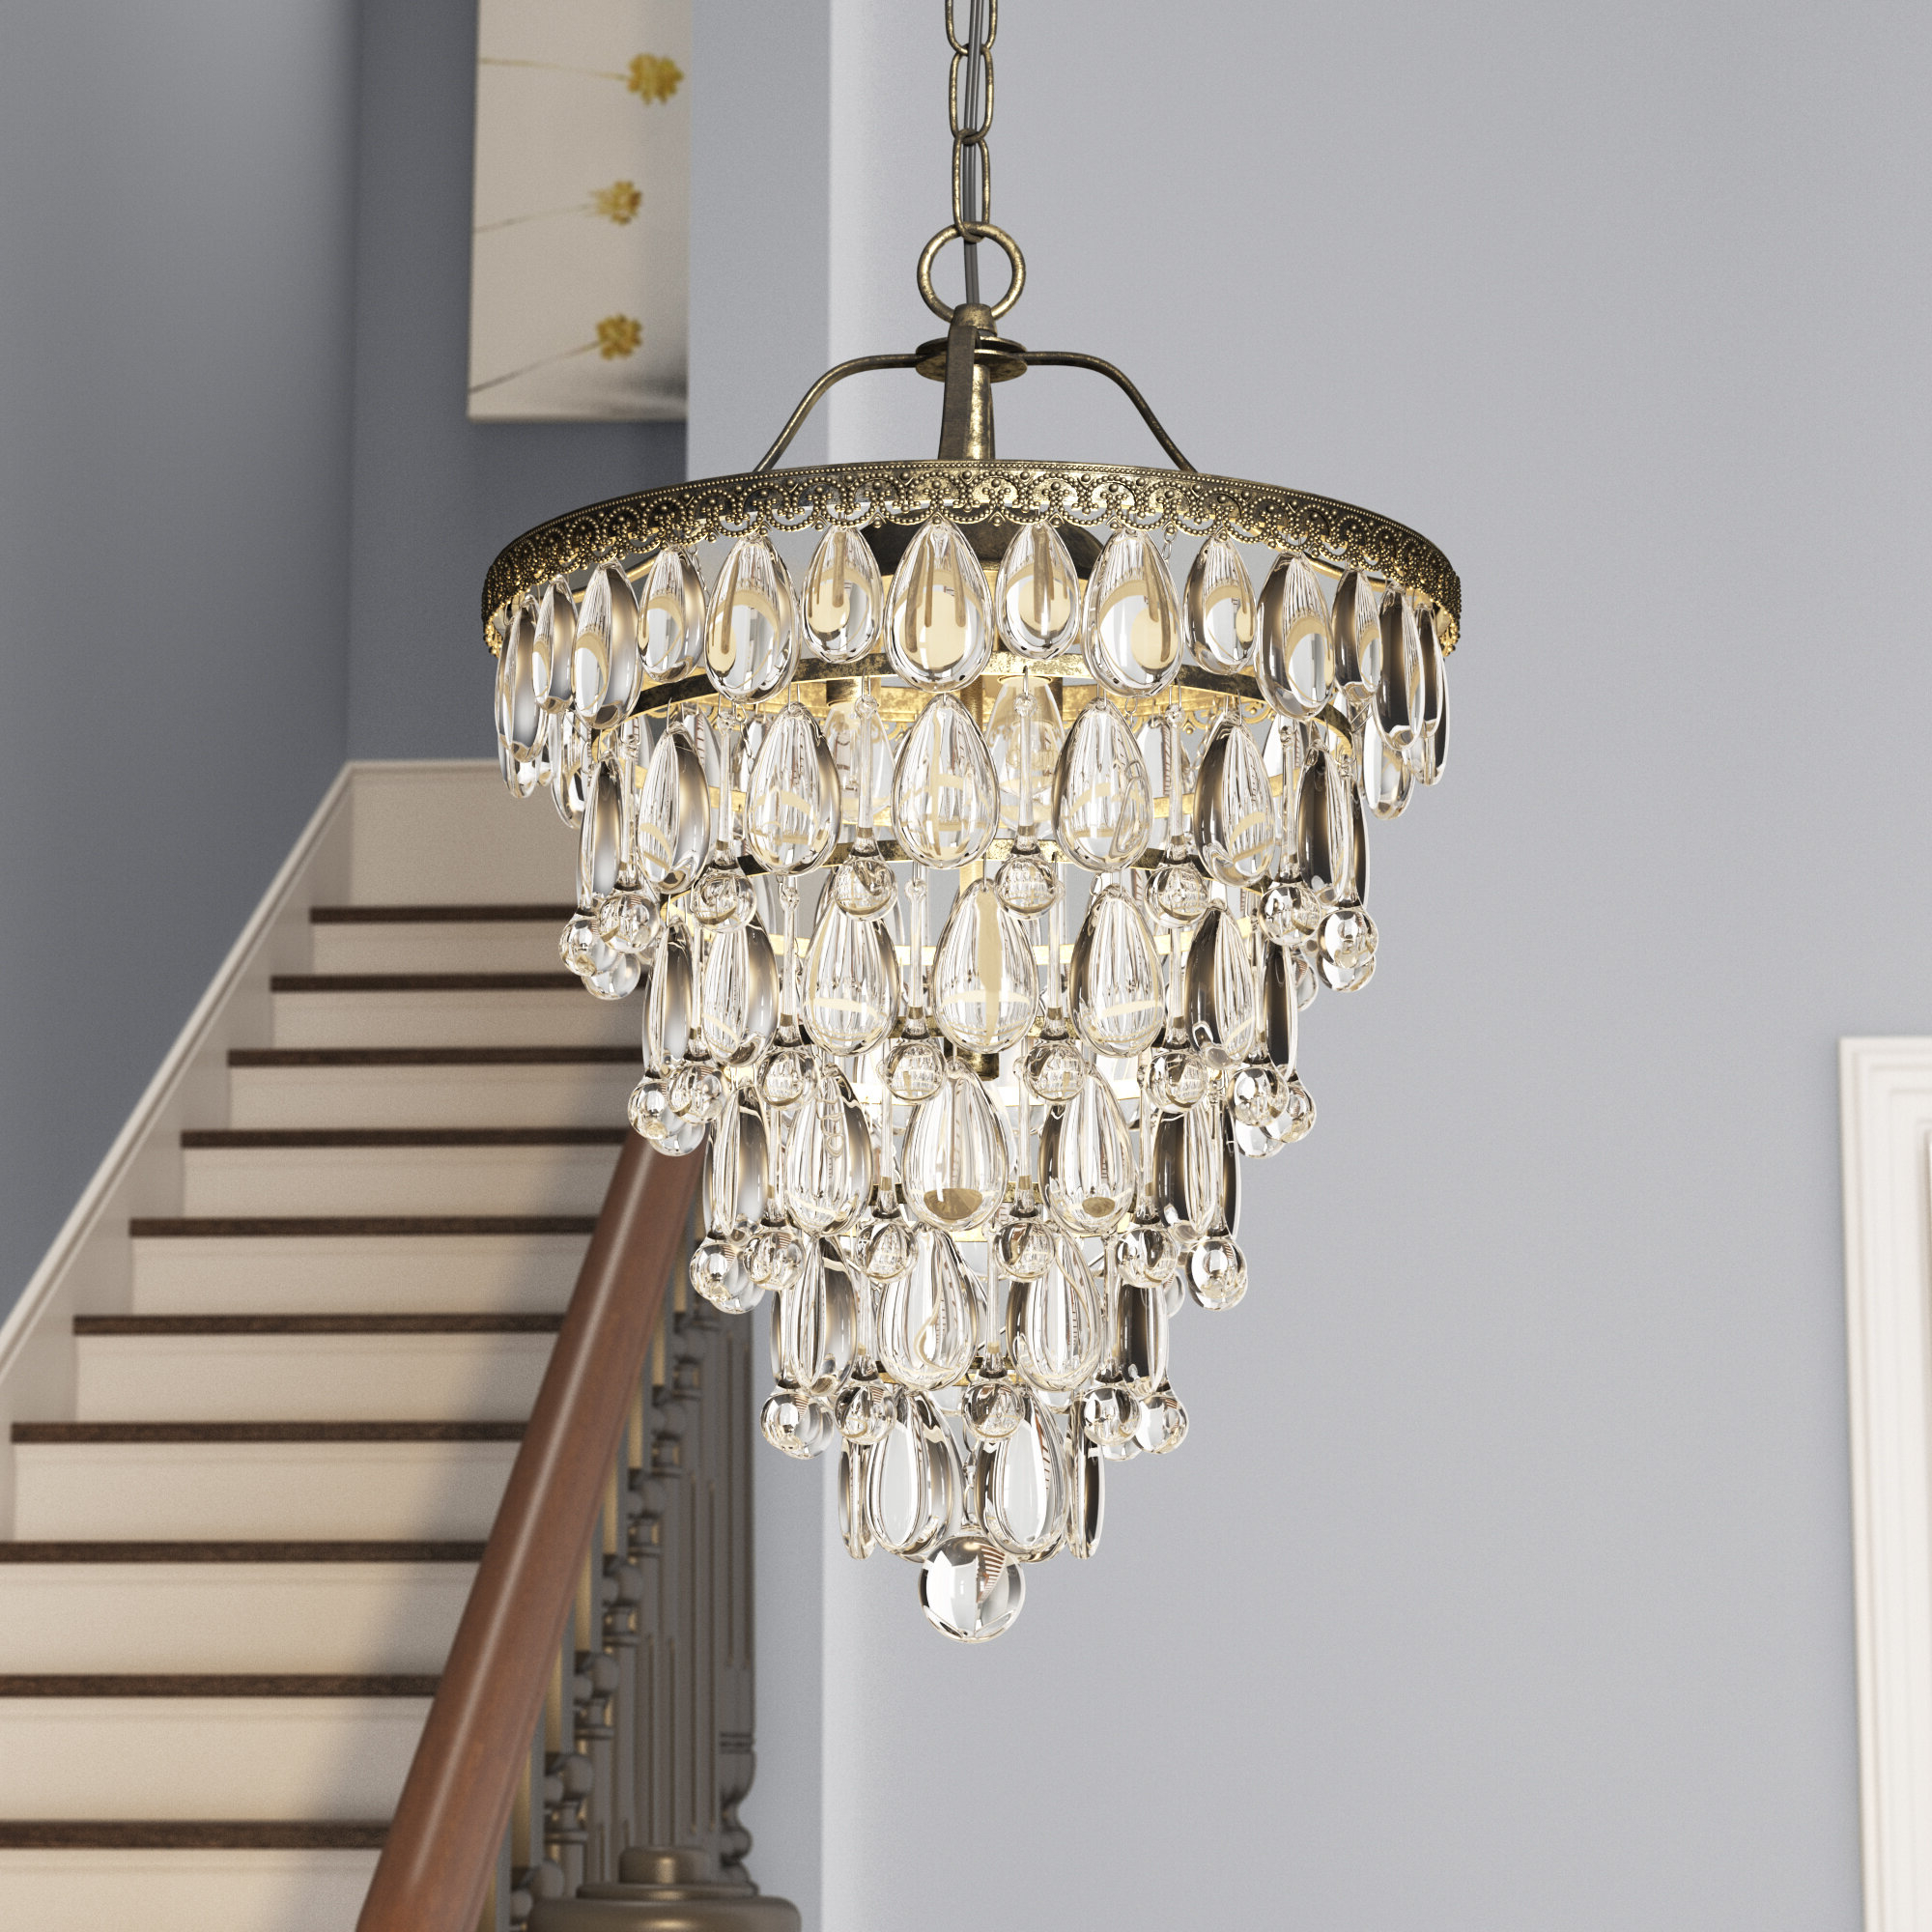 Bramers 6 Light Novelty Chandeliers For Most Current Totnes 4 Light Crystal Chandelier (View 4 of 20)